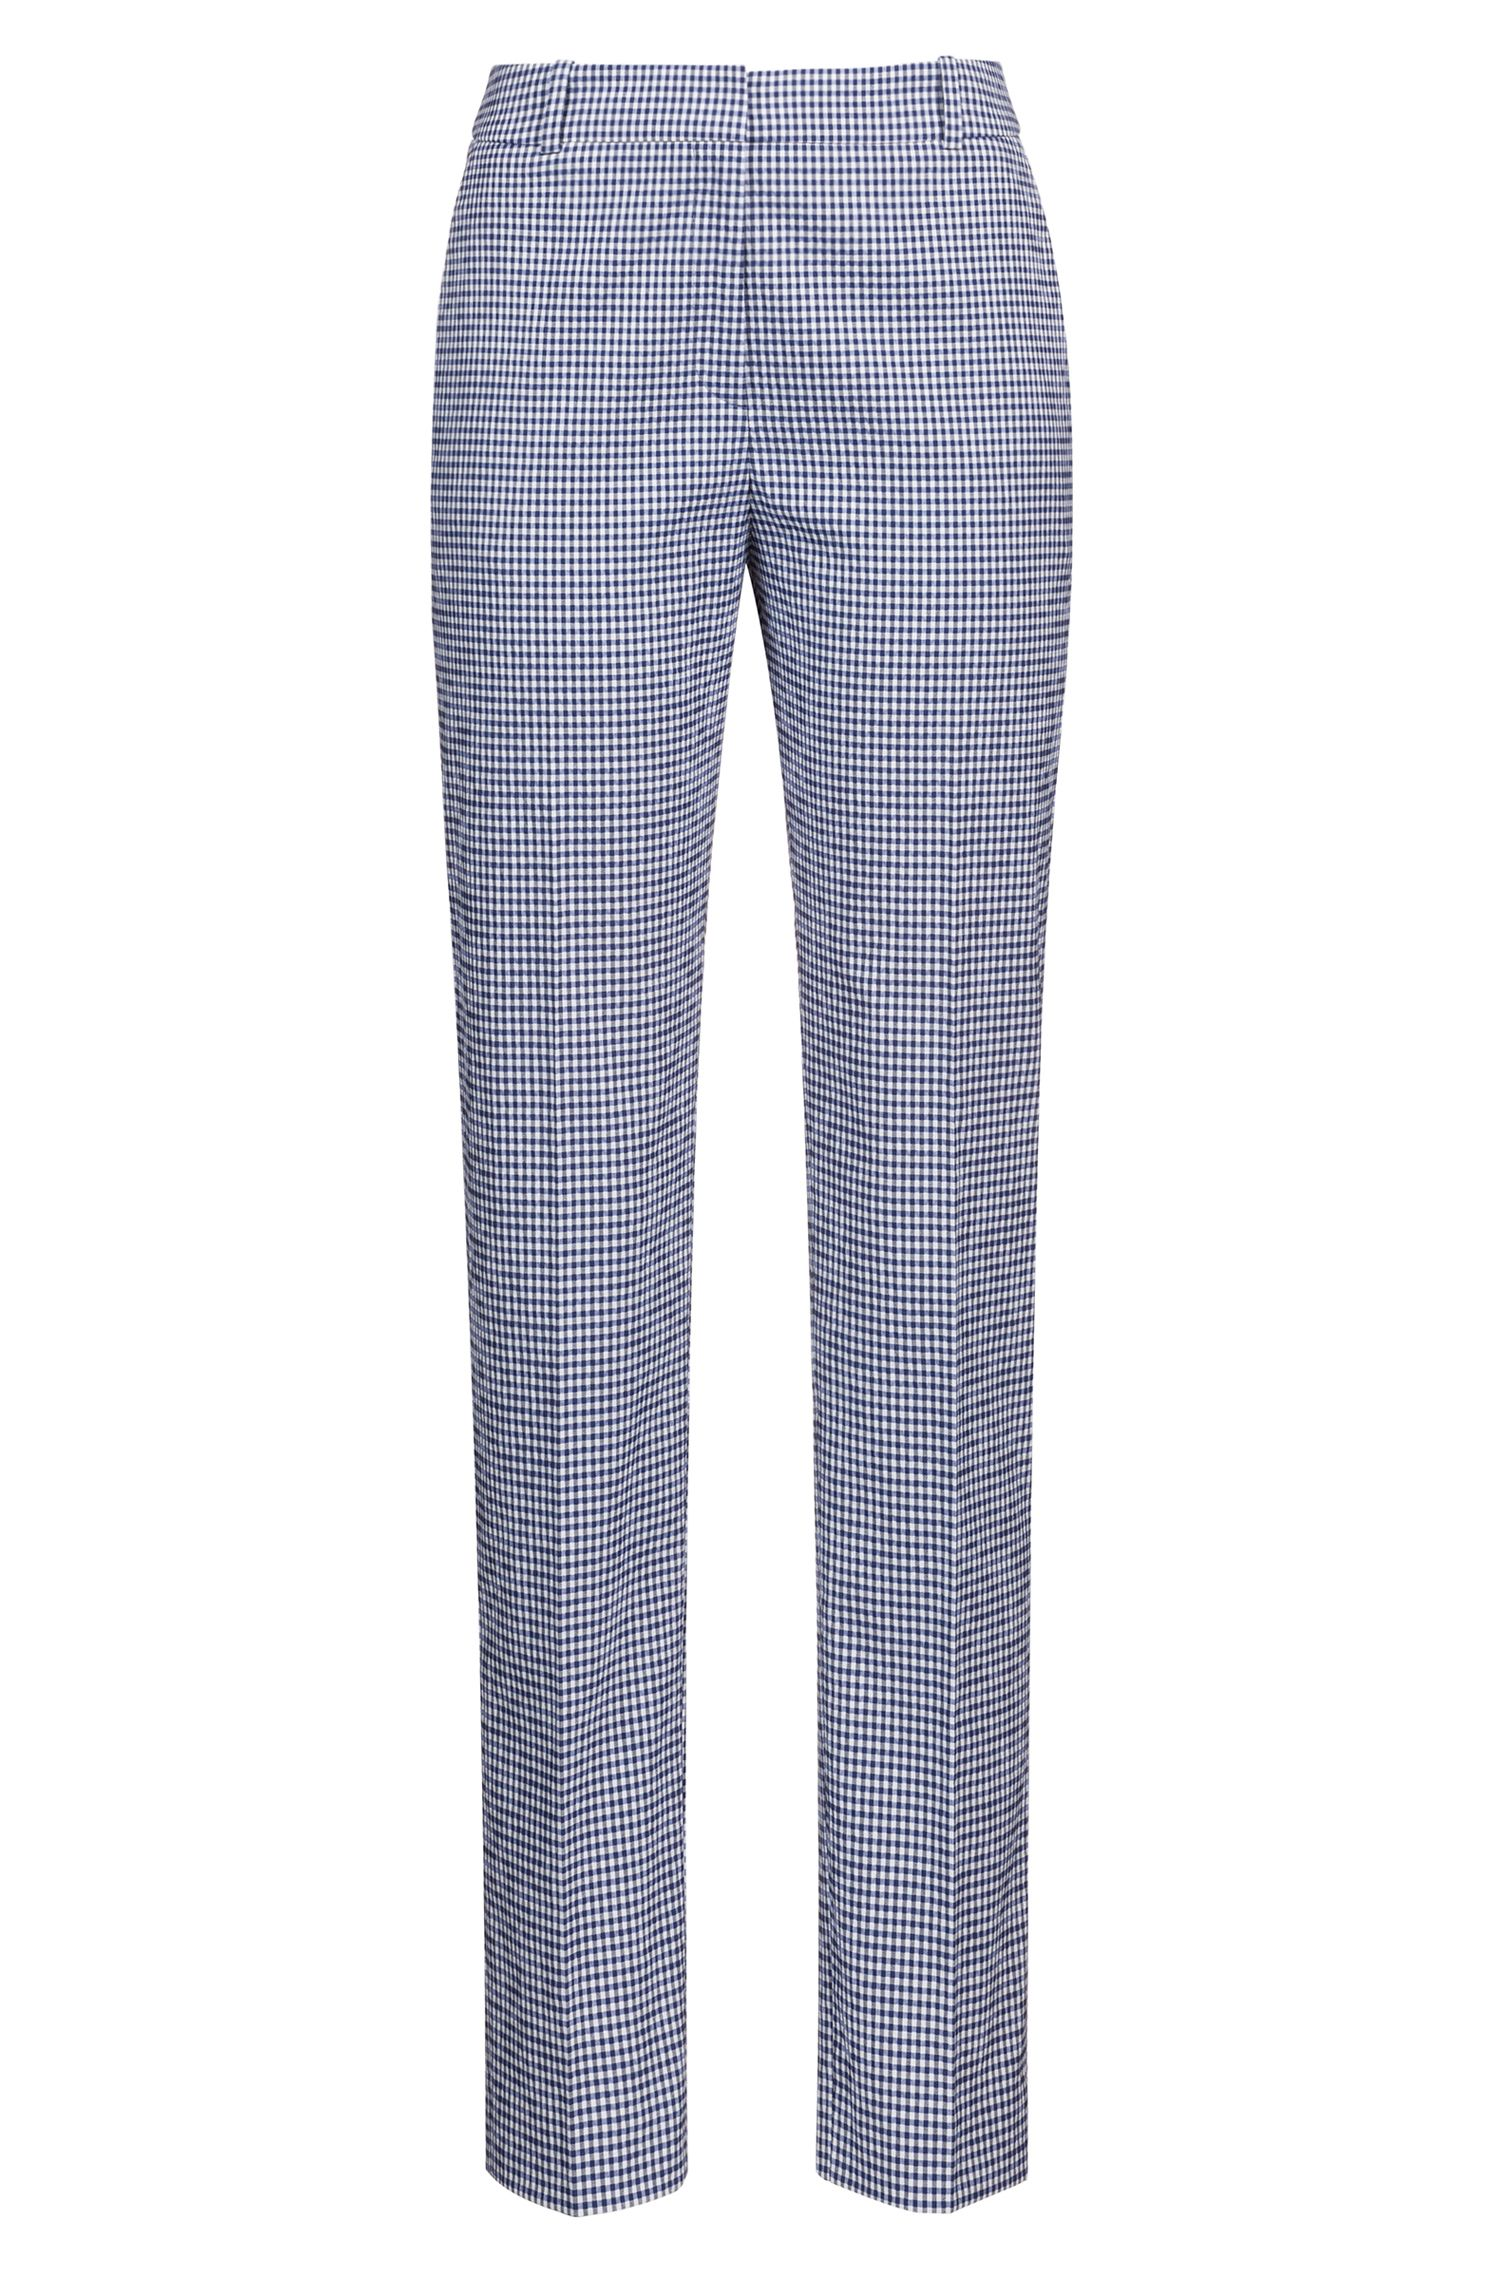 Regular-fit Vichy-check cigarette trousers in a stretch-cotton blend, Patterned